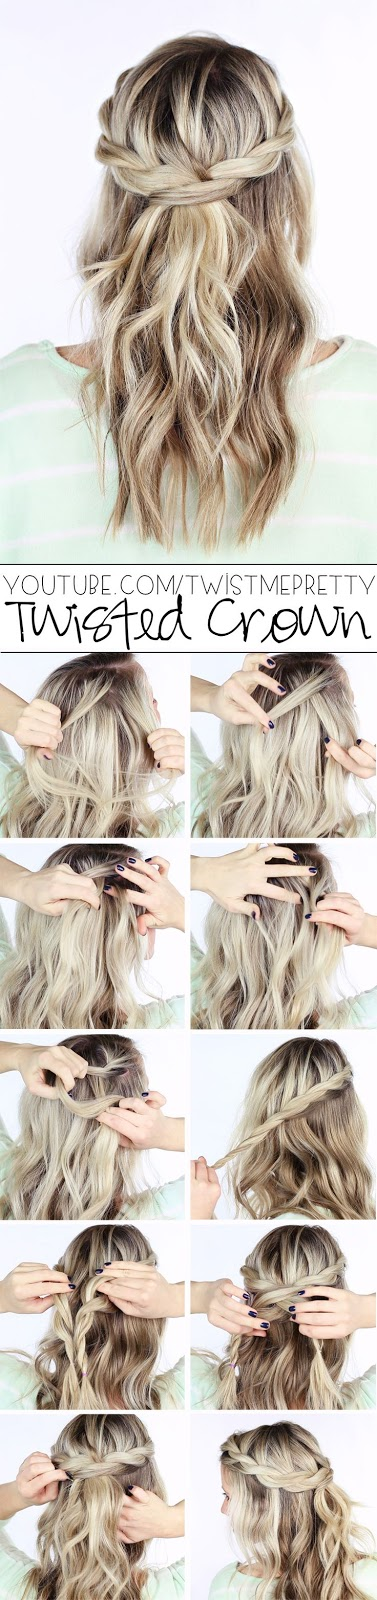 see more Hot twisted crown hairstyle